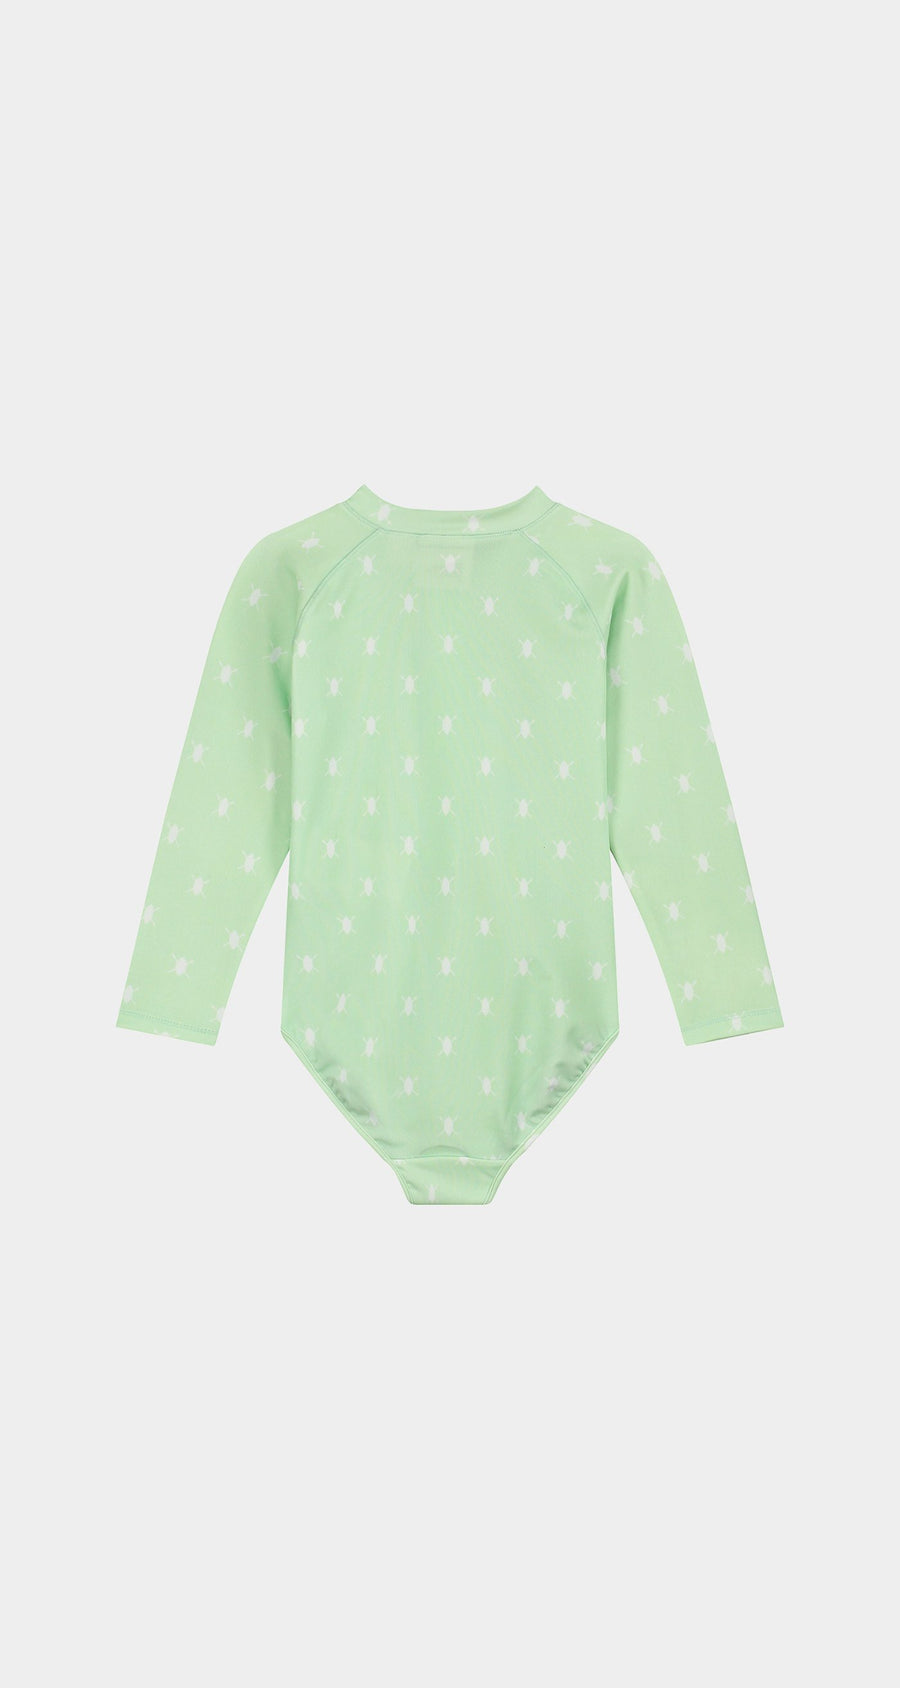 Daily Paper - Patina Green Kids Shield Longsleeve Swimsuit Rear